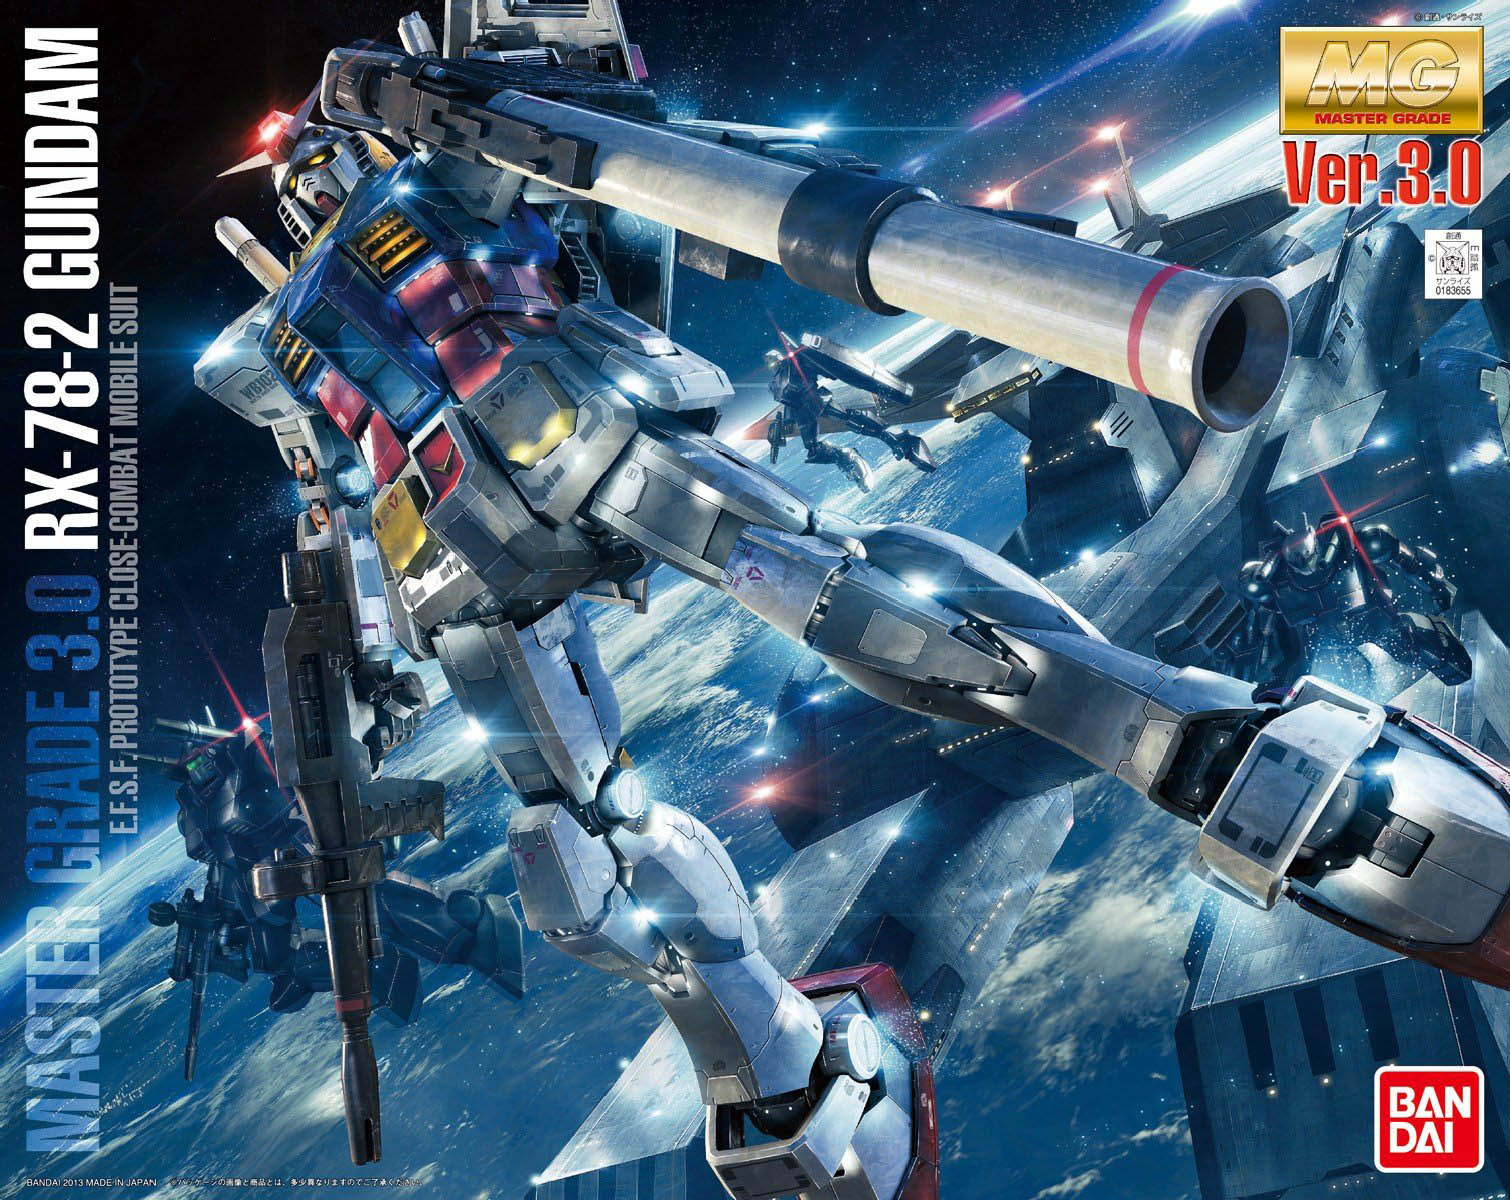 MG 1/100 RX-78-2 Gundam Ver. 3.0 Announced - Released in Japan!